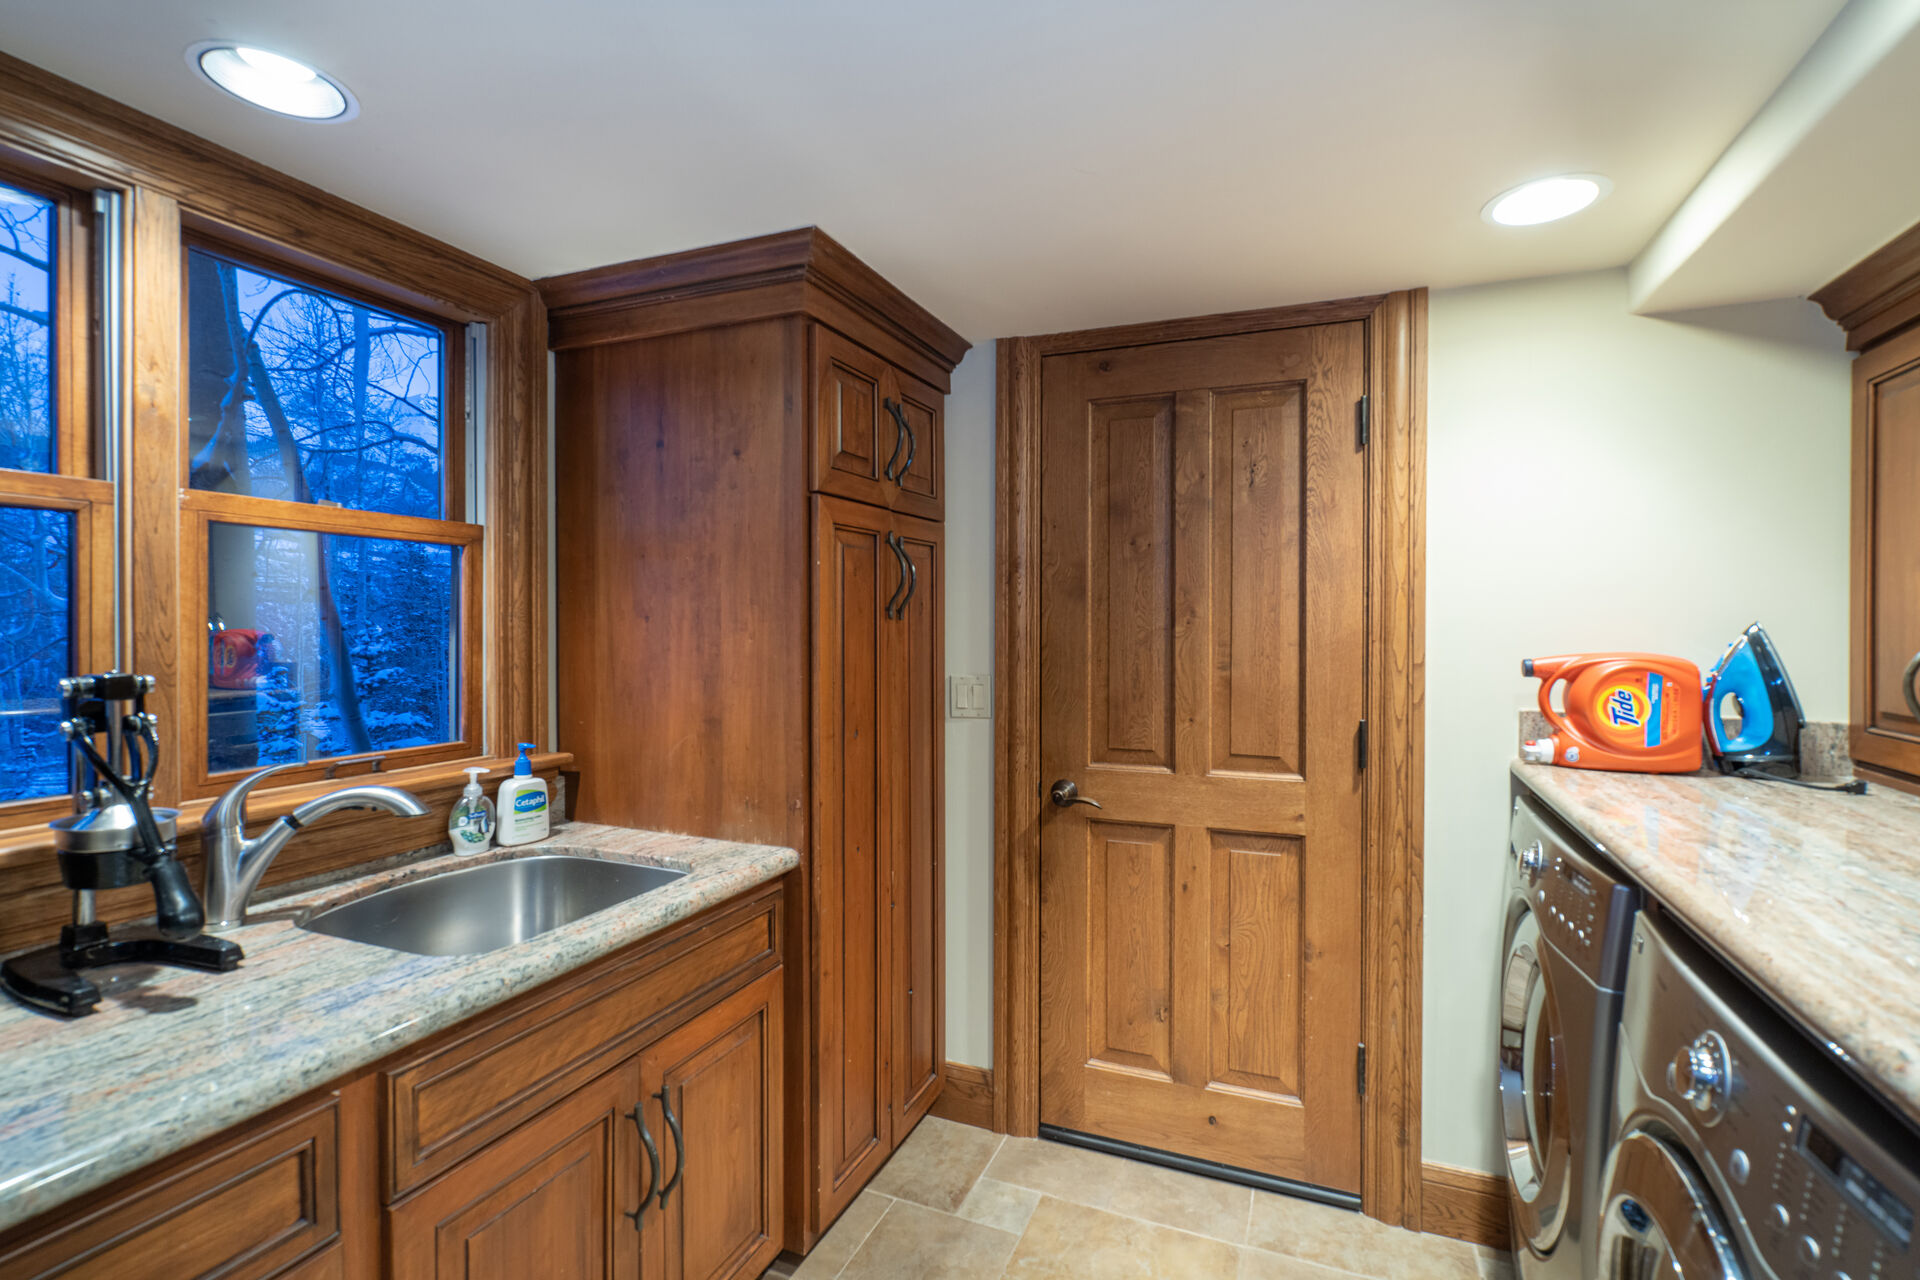 Laundry room with sink and stainless steel washer and dryer.